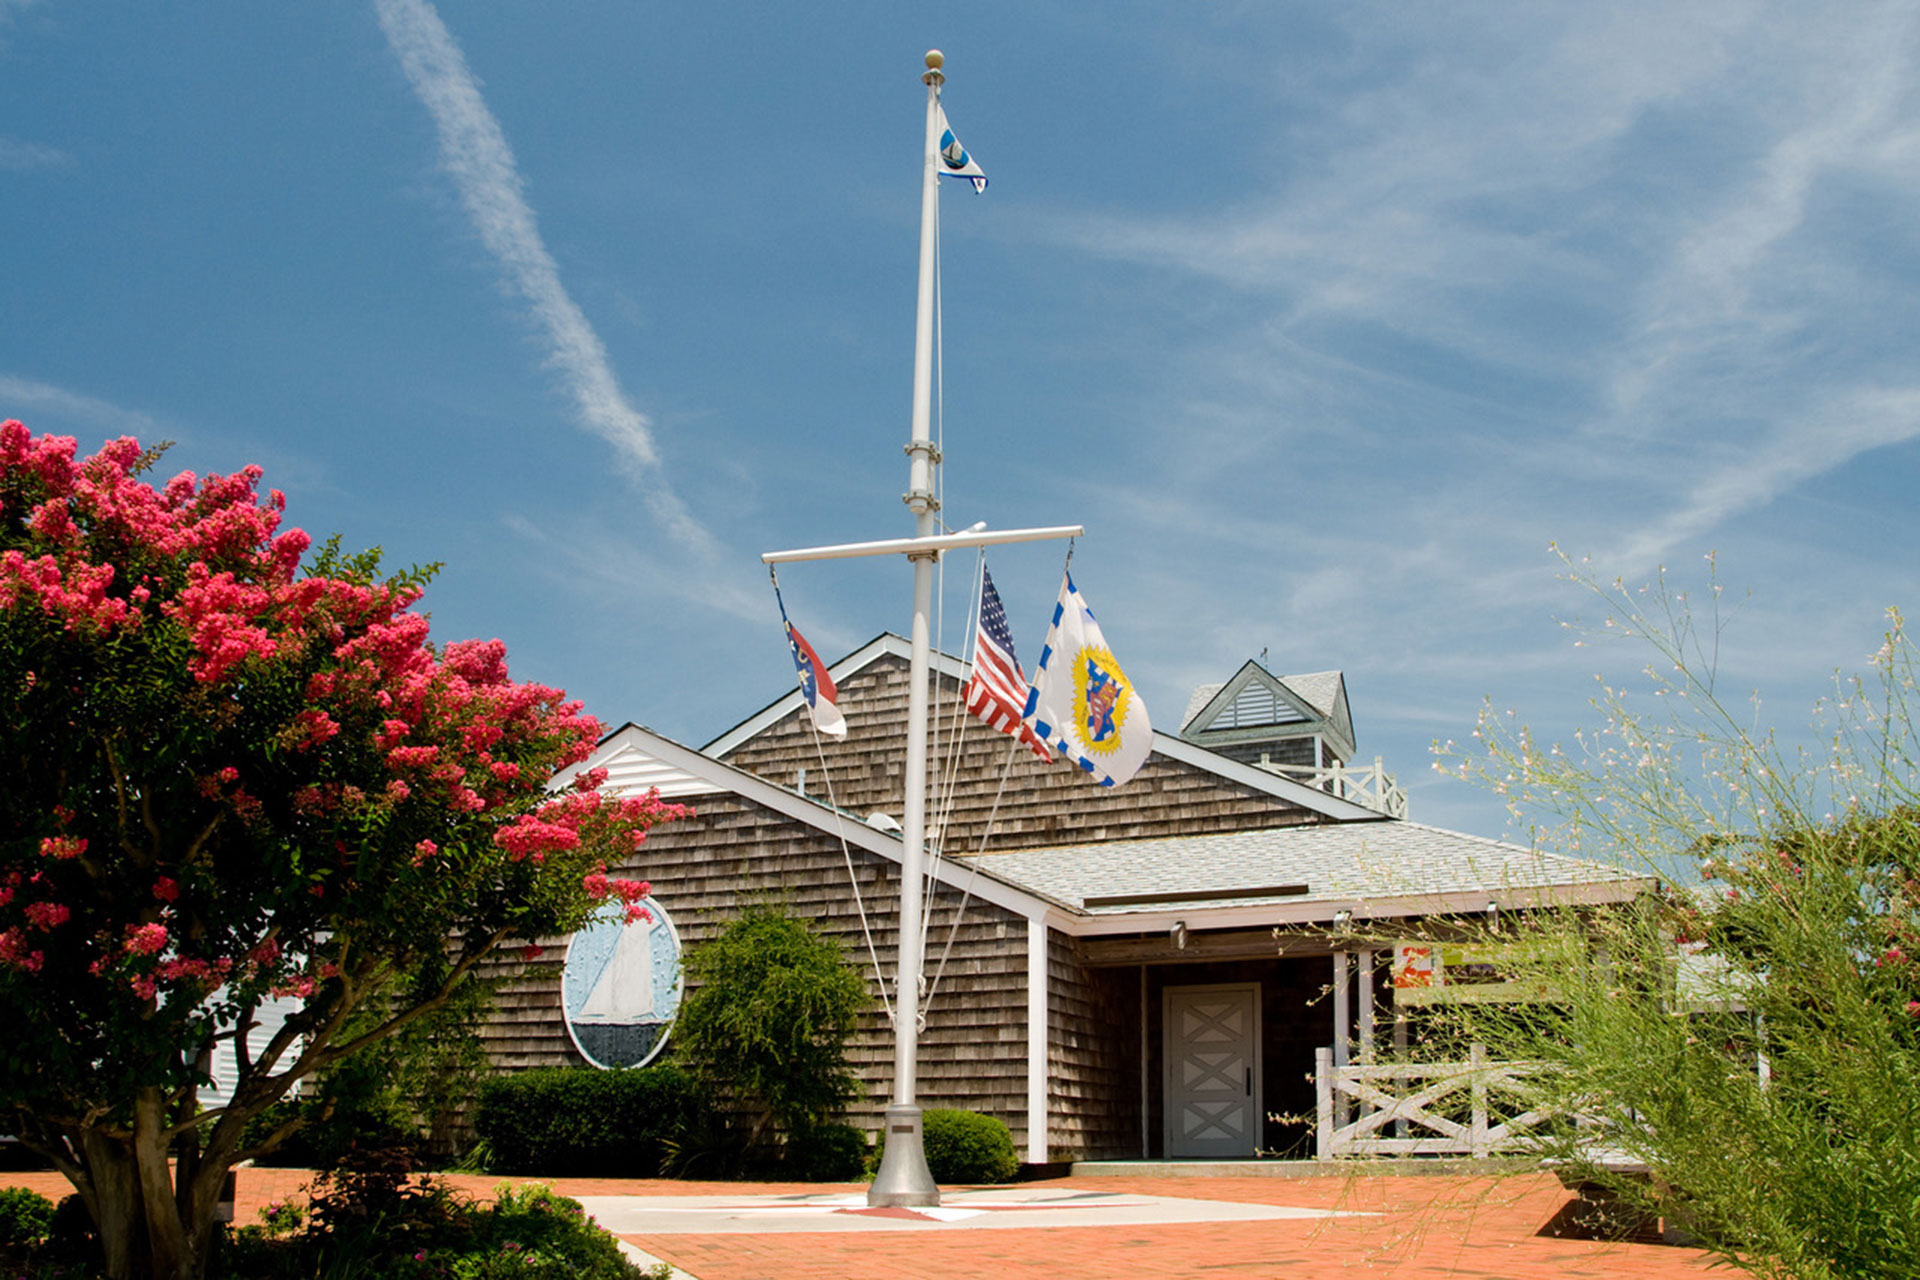 North Carolina Maritime Museum; Courtesy of North Carolina Maritime Museum